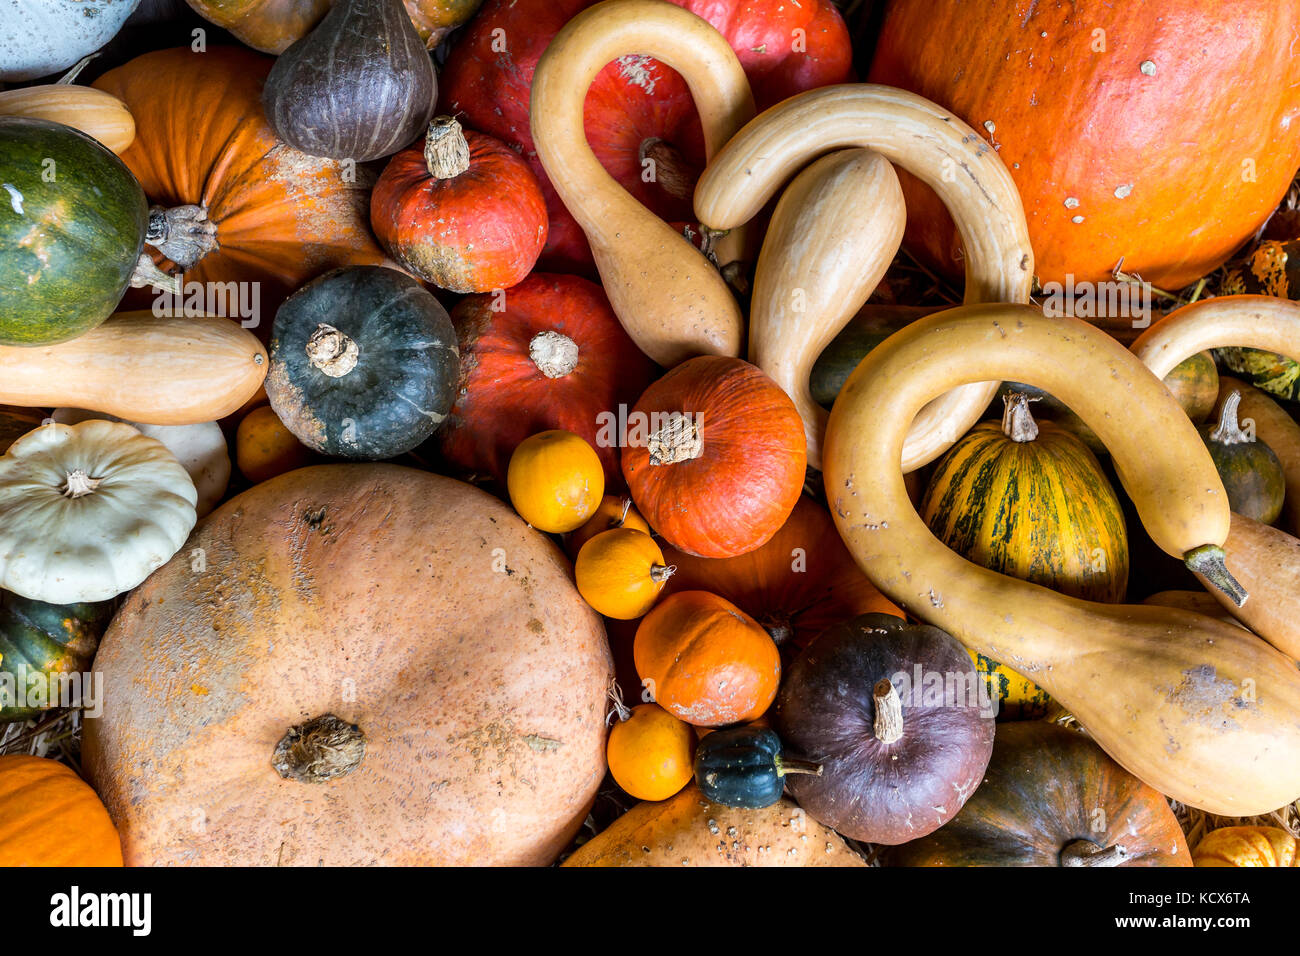 Assortment of colourful pumpkins, squashes and gourds - Stock Image